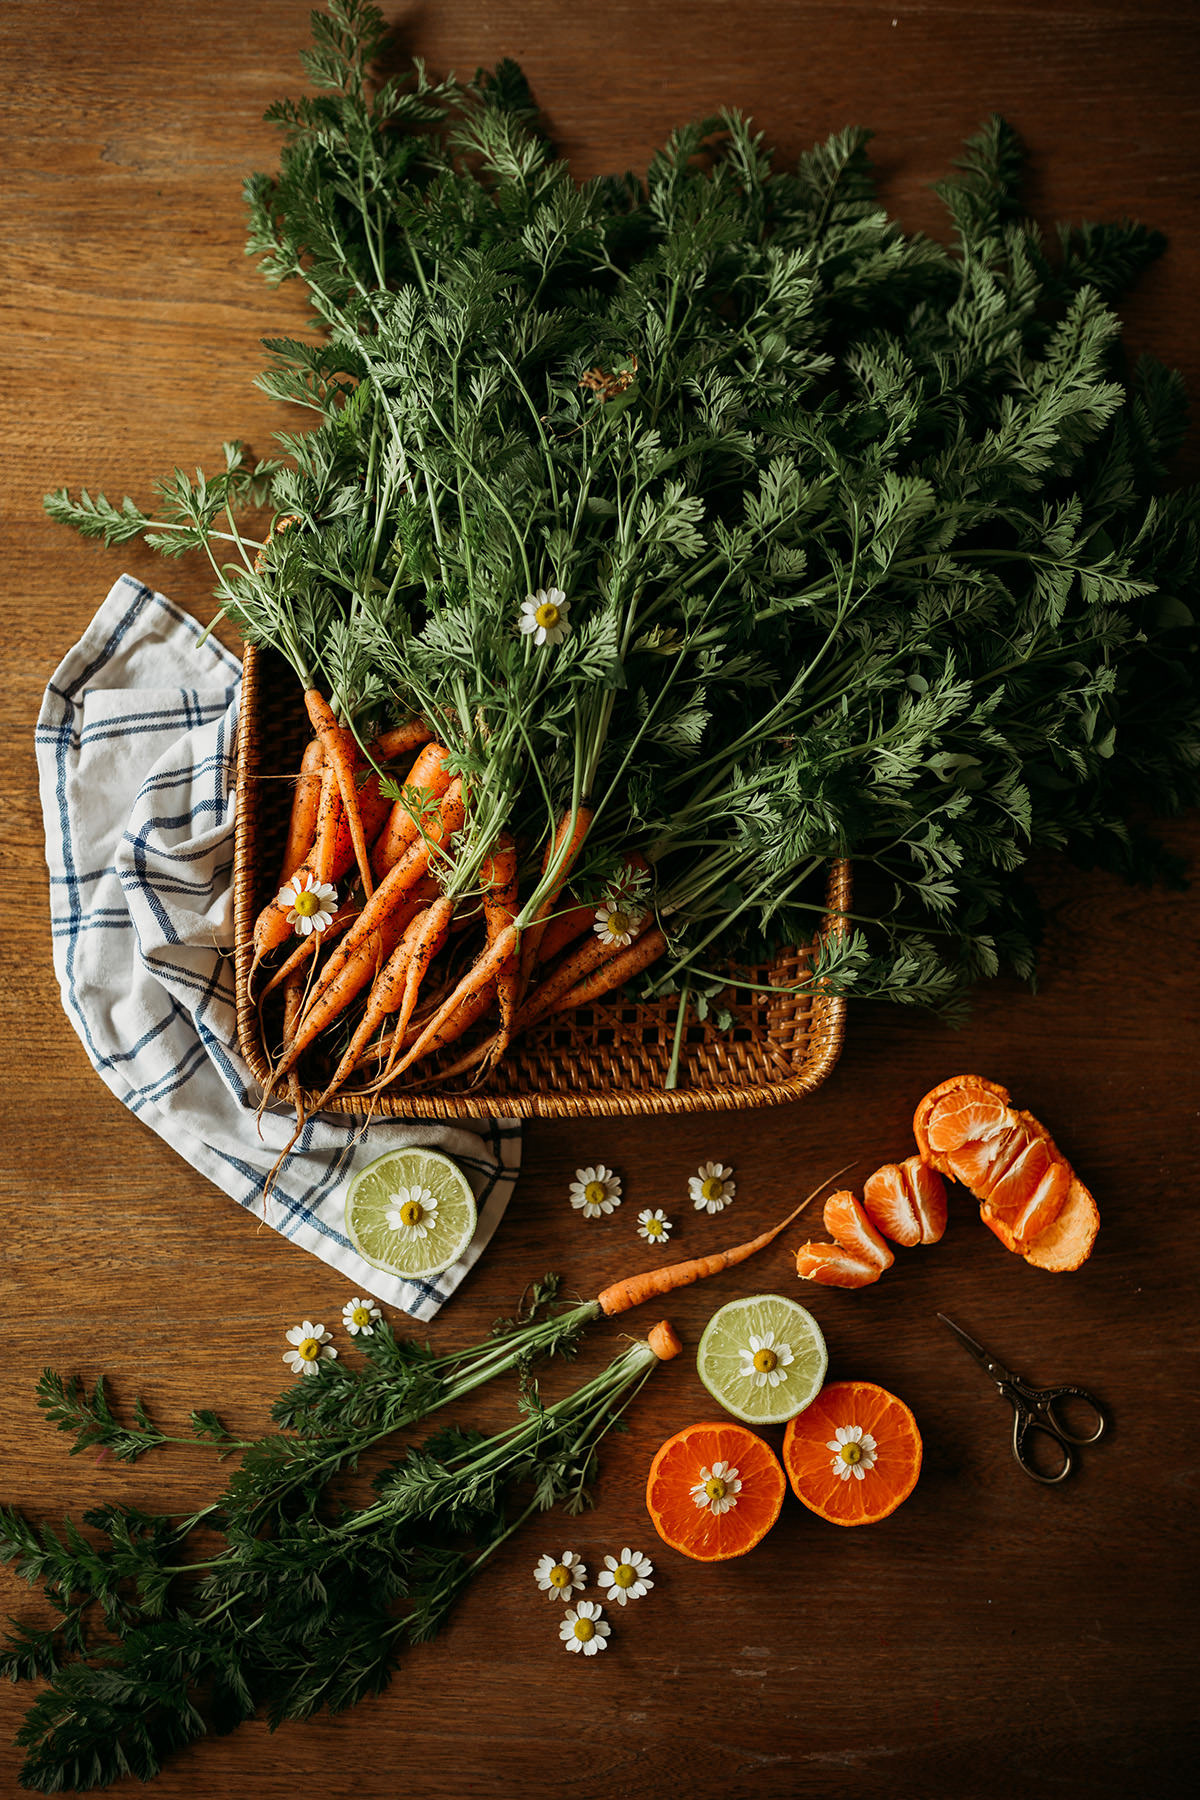 Fresh carrots, lemons, and tangerines perfectly arranged on a wooden surface